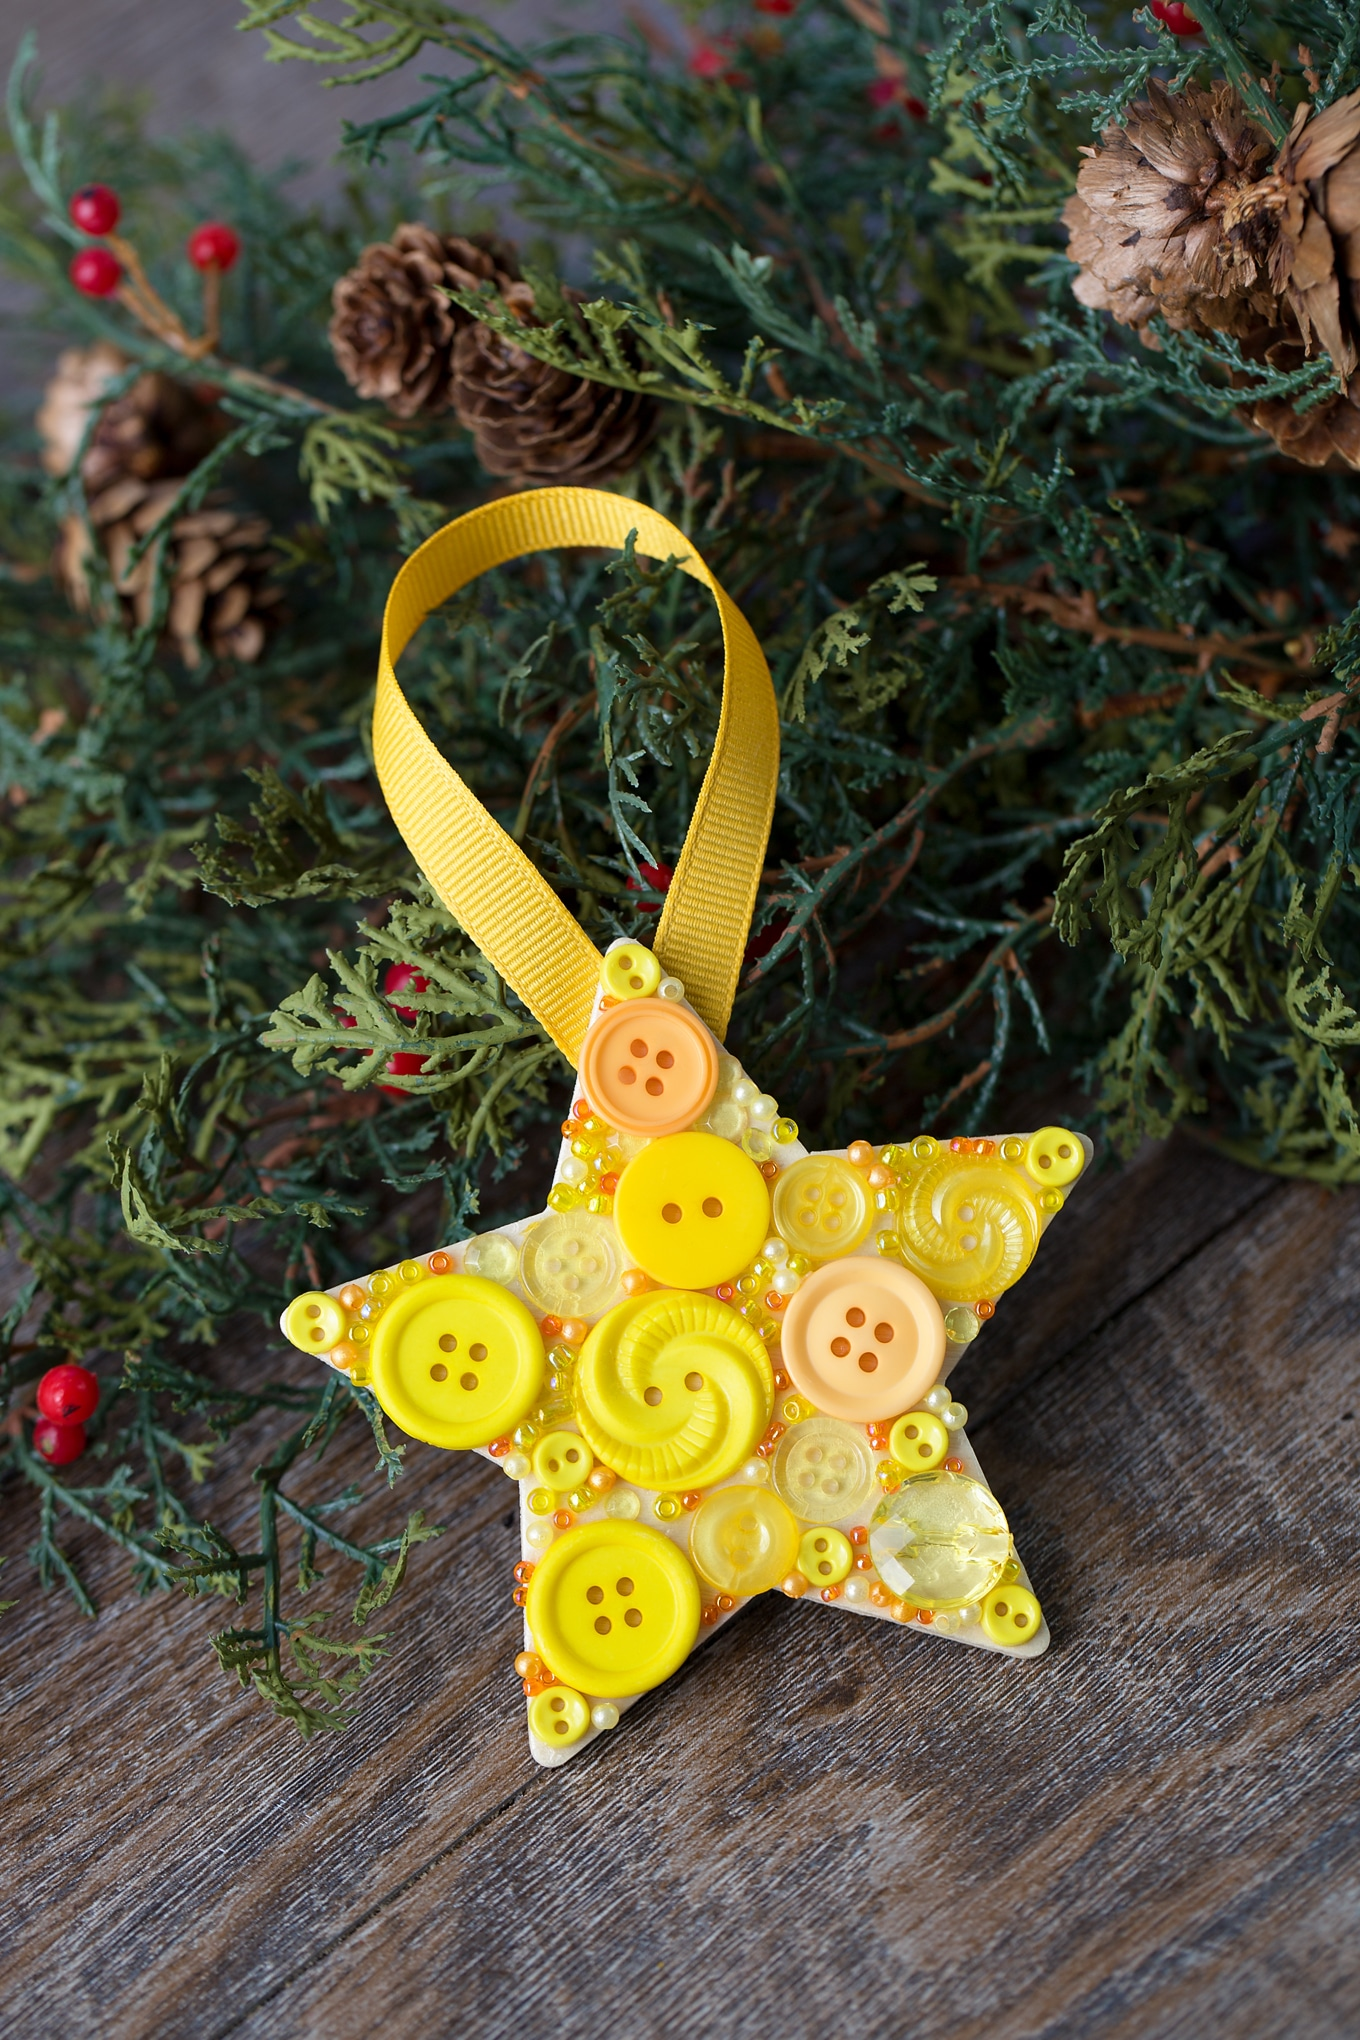 How to Make Colorful DIY Button Star Ornaments for Kids